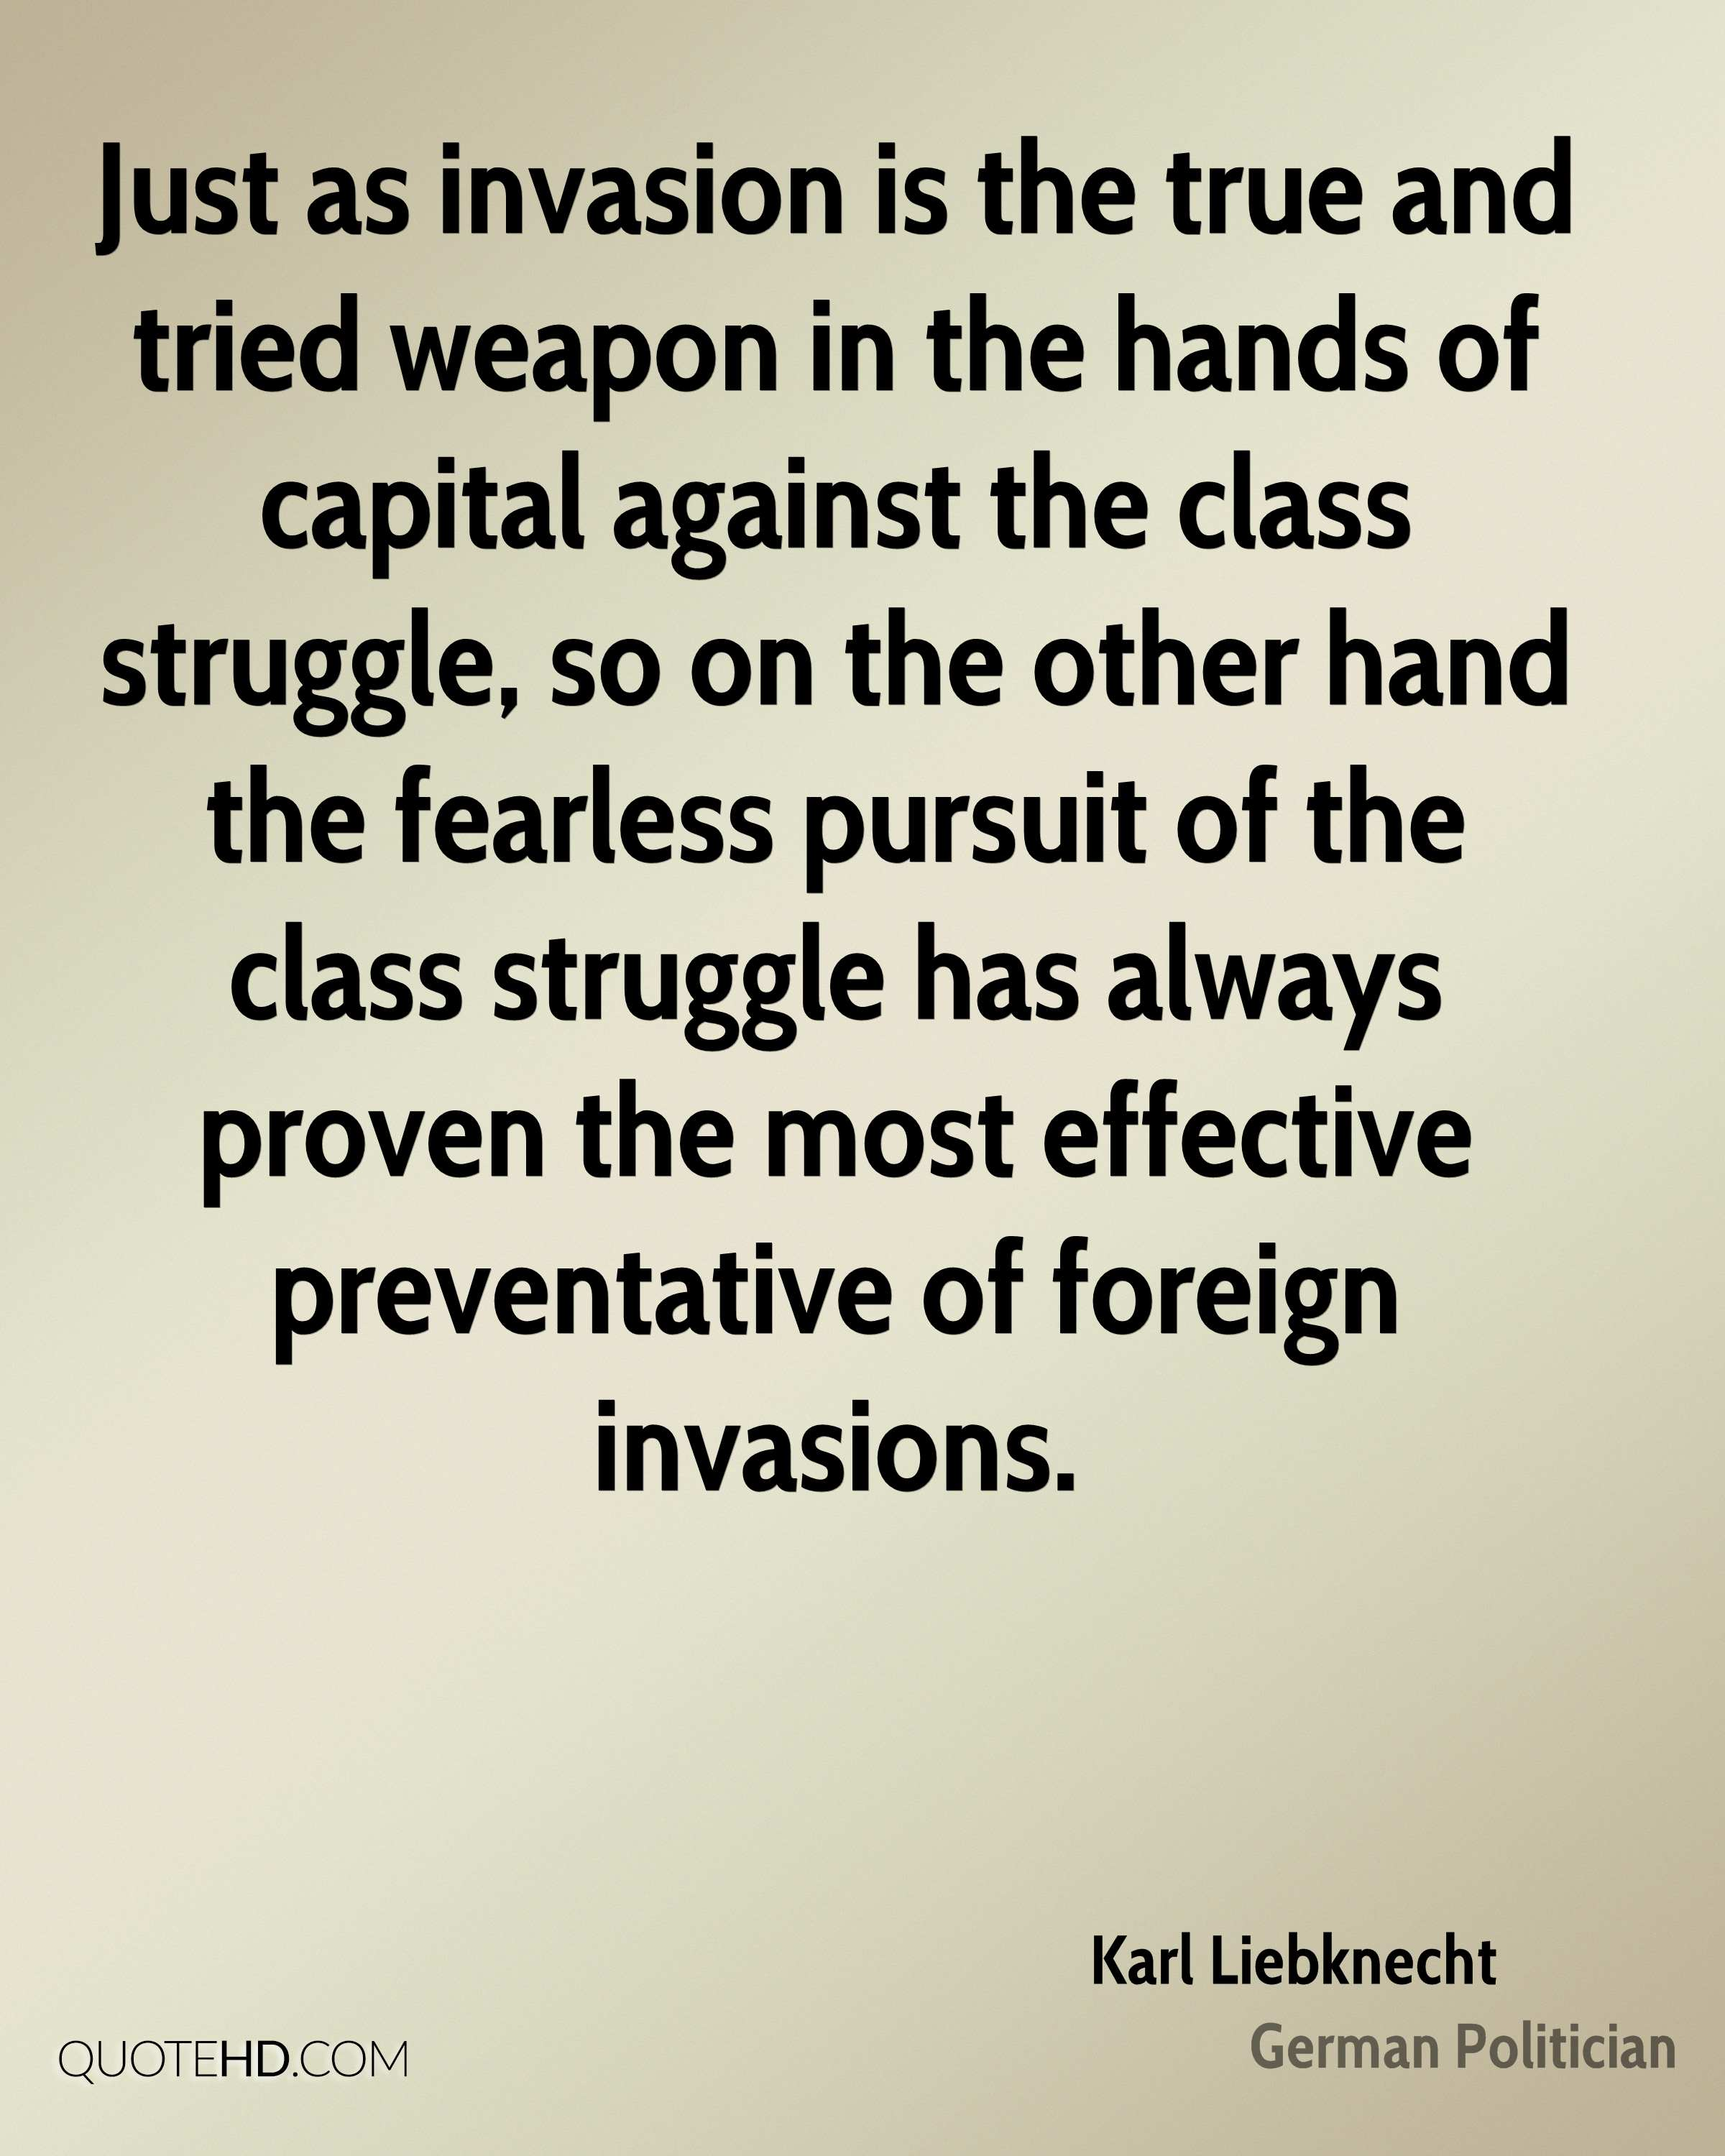 Just as invasion is the true and tried weapon in the hands of capital against the class struggle, so on the other hand the fearless pursuit of the class struggle has always proven the most effective preventative of foreign invasions.